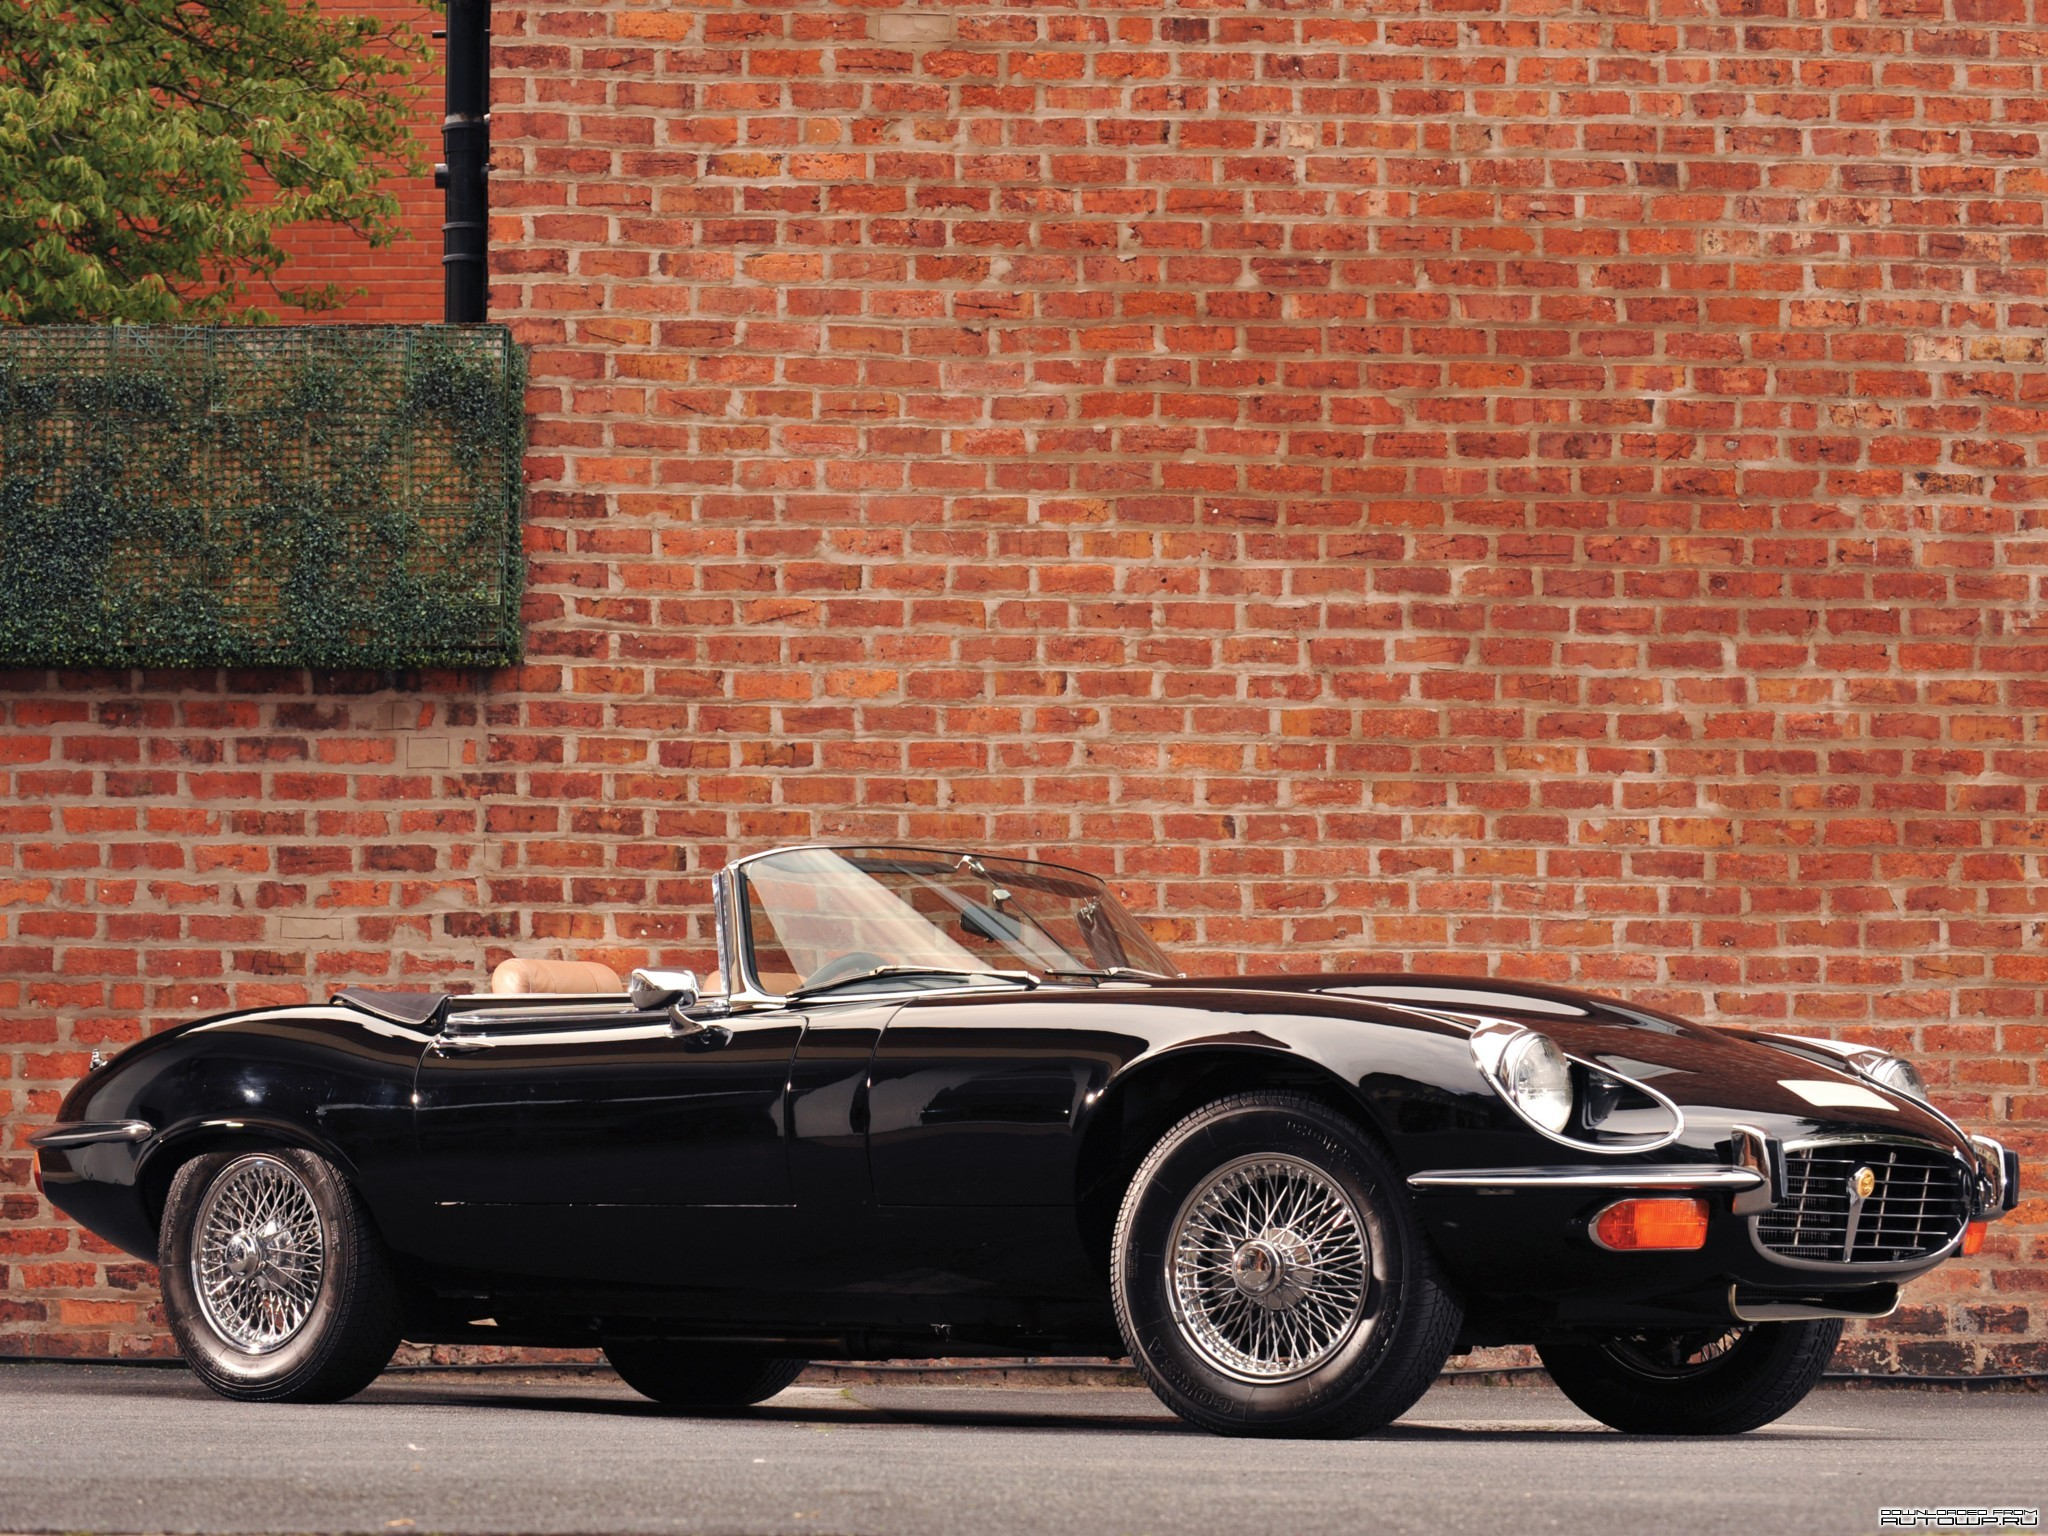 Jaguar E-type V12 roadster